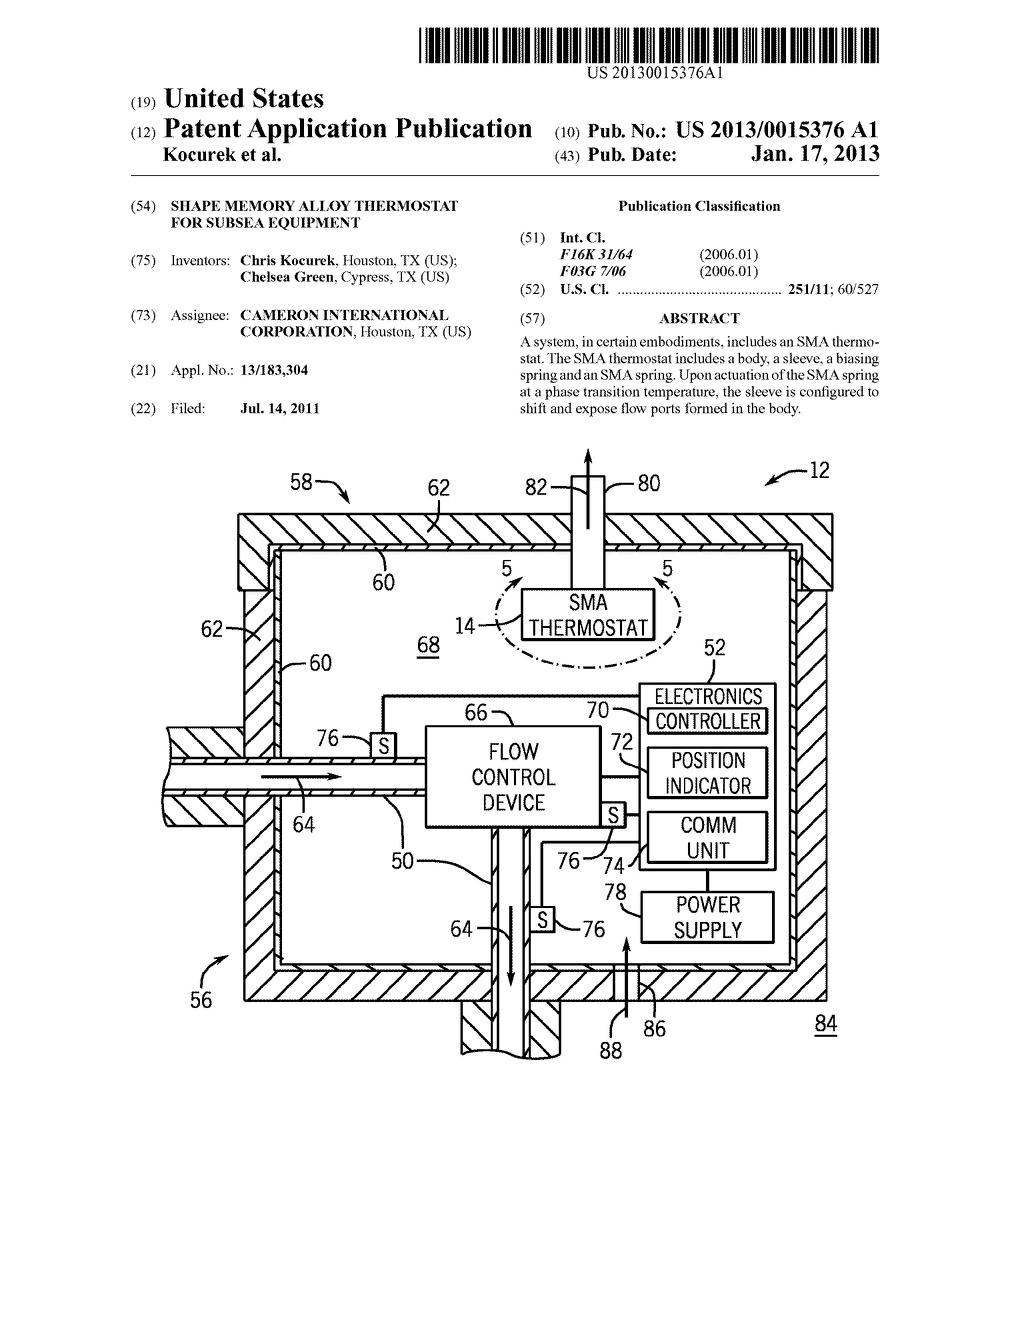 SHAPE MEMORY ALLOY THERMOSTAT FOR SUBSEA EQUIPMENTAANM Kocurek; ChrisAACI HoustonAAST TXAACO USAAGP Kocurek; Chris Houston TX USAANM Green; ChelseaAACI CypressAAST TXAACO USAAGP Green; Chelsea Cypress TX US - diagram, schematic, and image 01